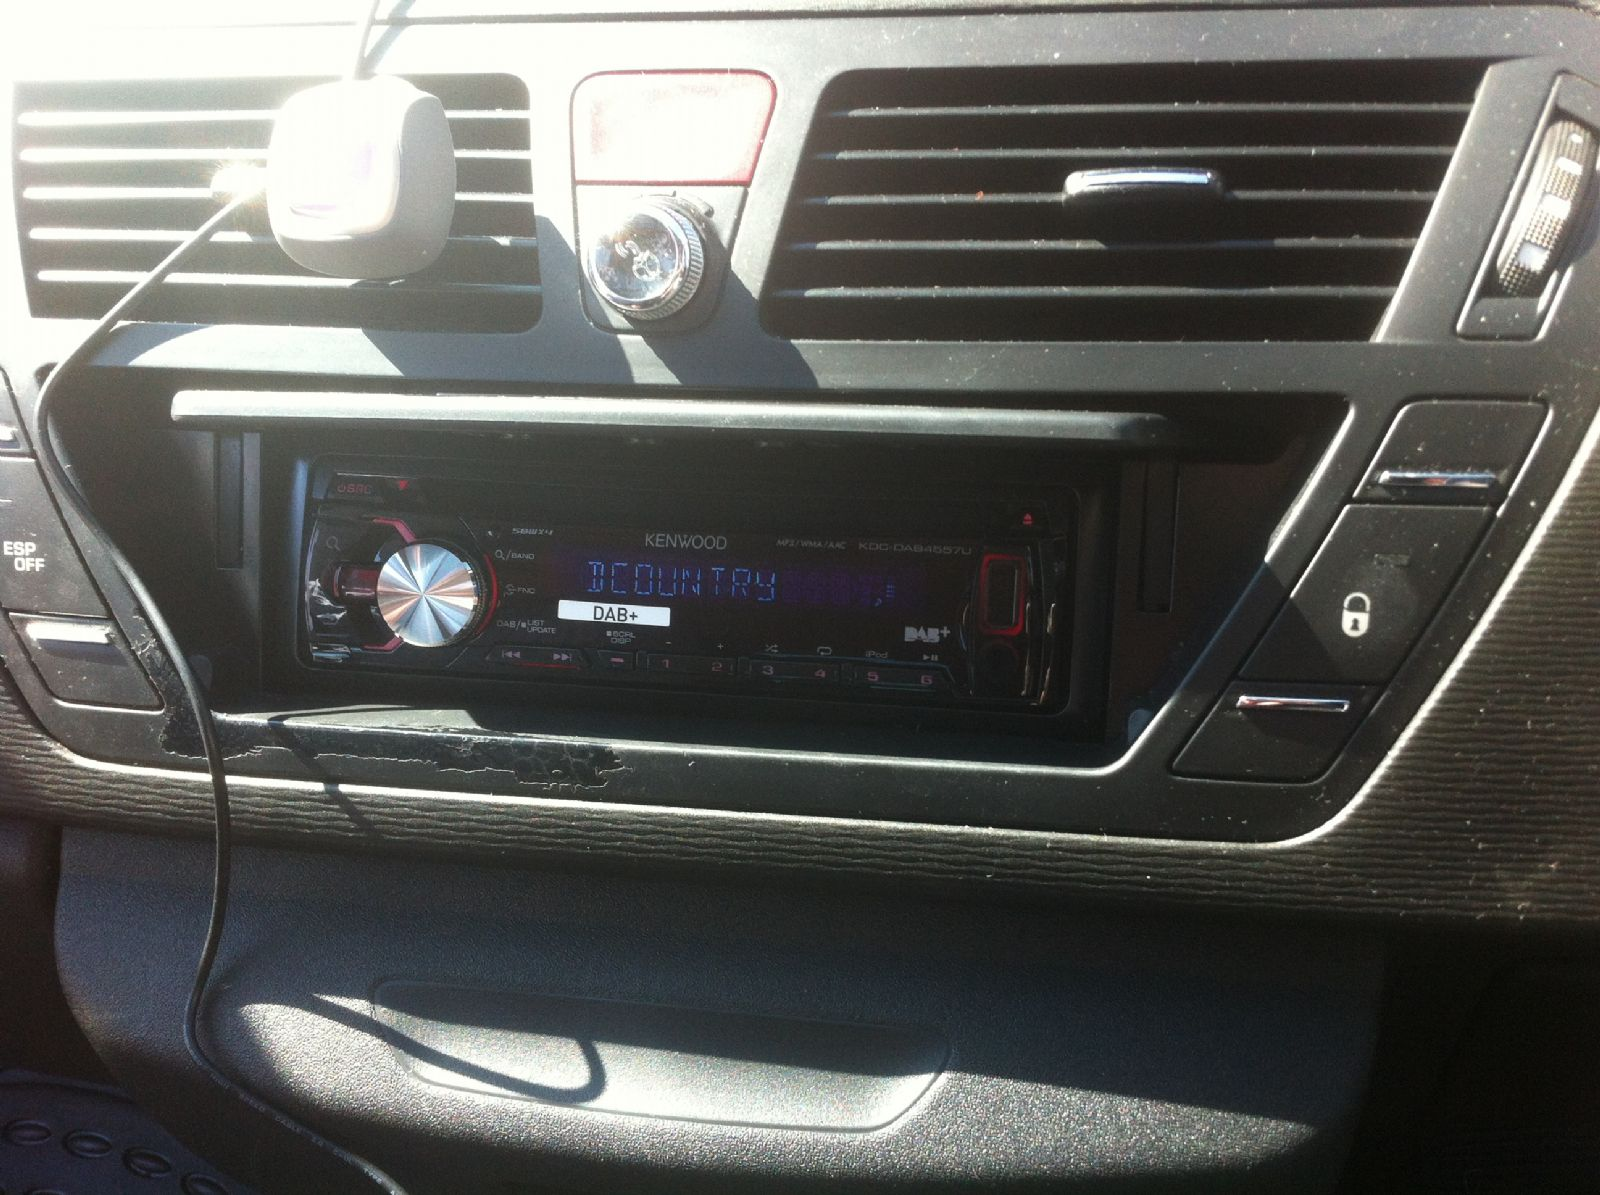 citroen_c4_picasso_kenwood_dab_radio_head_unit.JPG